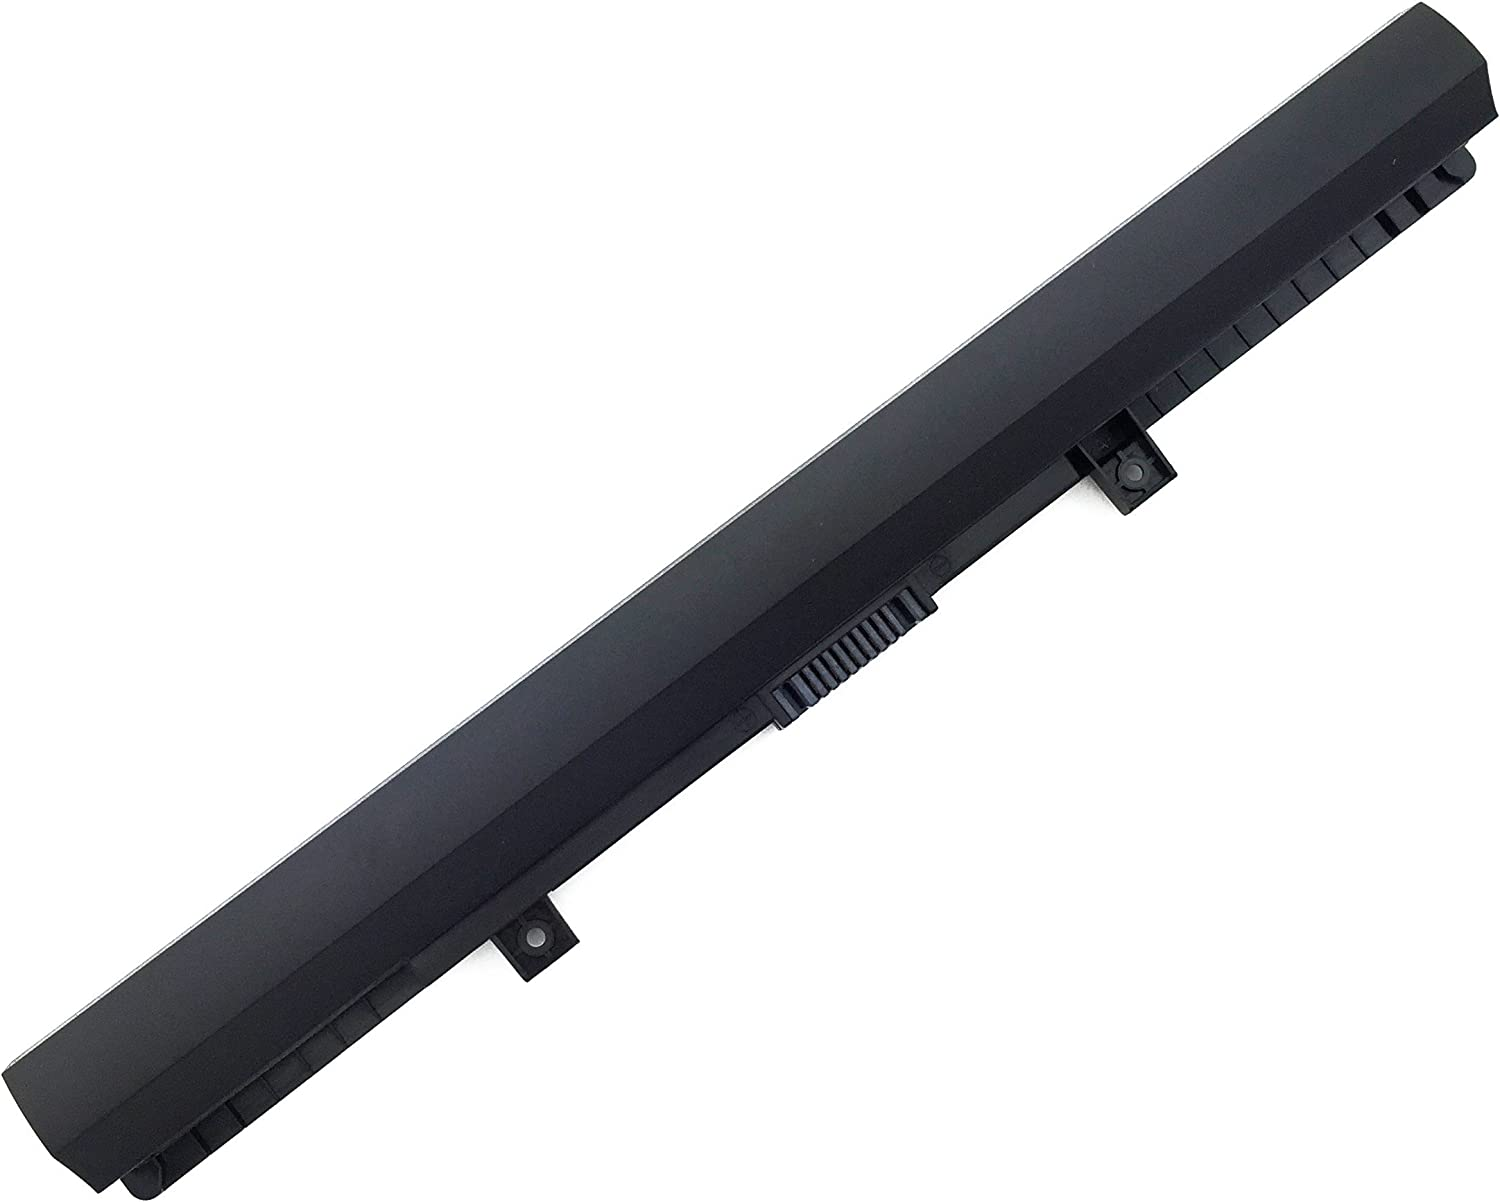 LQM New Laptop Battery PA5185U-1BRS for Toshiba Satellite C55 C55D C55T L55 L55D L55T C55-B C55-B5299 C55-B5202 PA5186U-1BRS PA5184U-1BRS